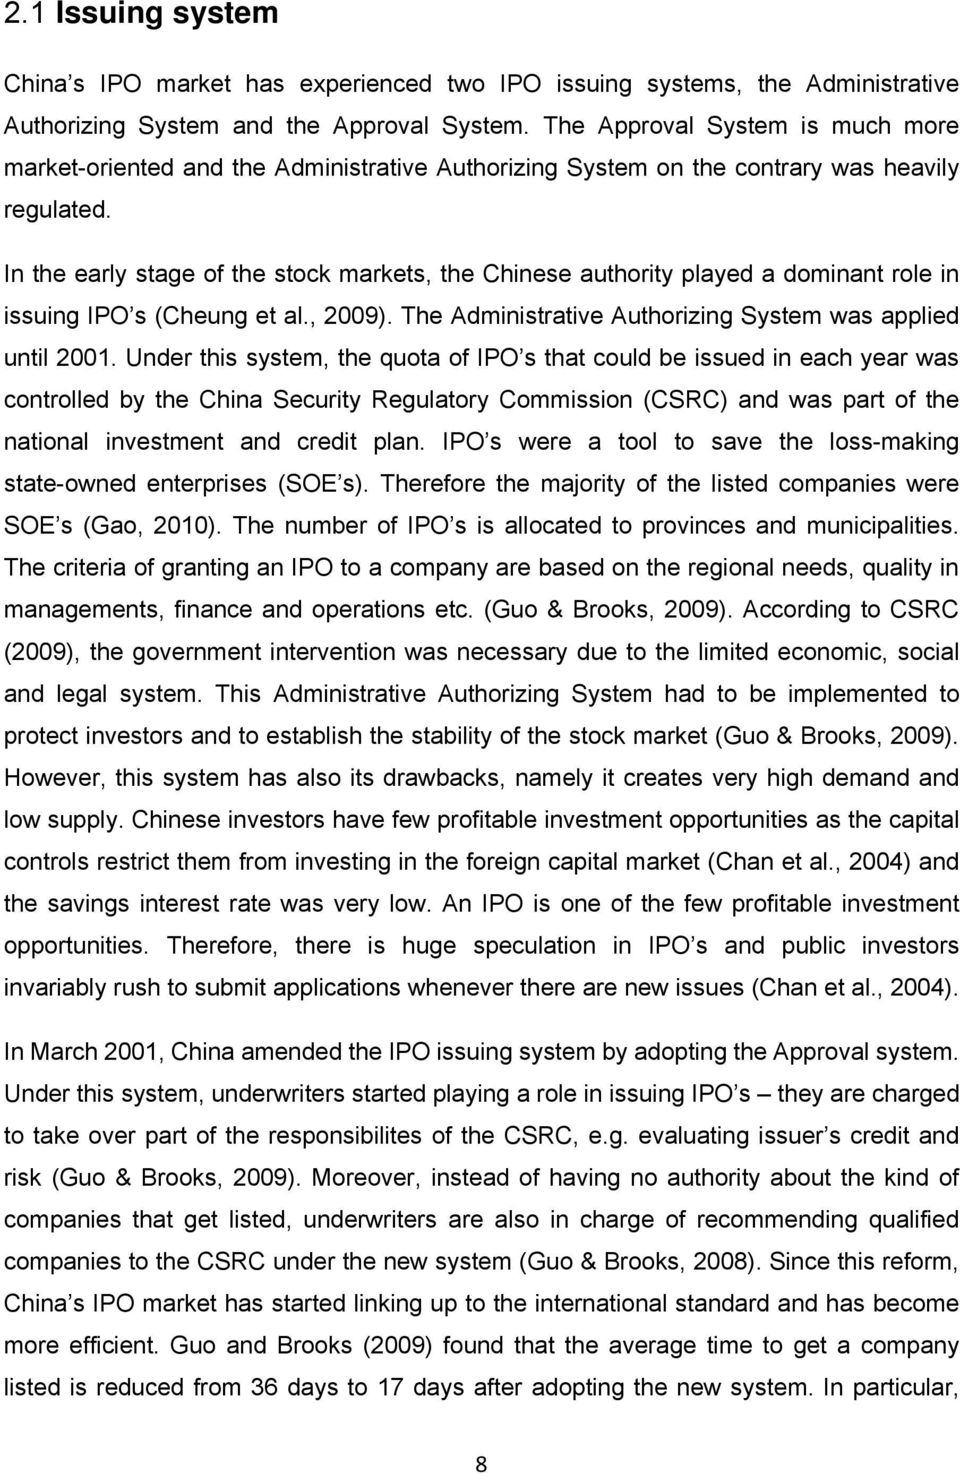 In the early stage of the stock markets, the Chinese authority played a dominant role in issuing IPO s (Cheung et al., 2009). The Administrative Authorizing System was applied until 2001.